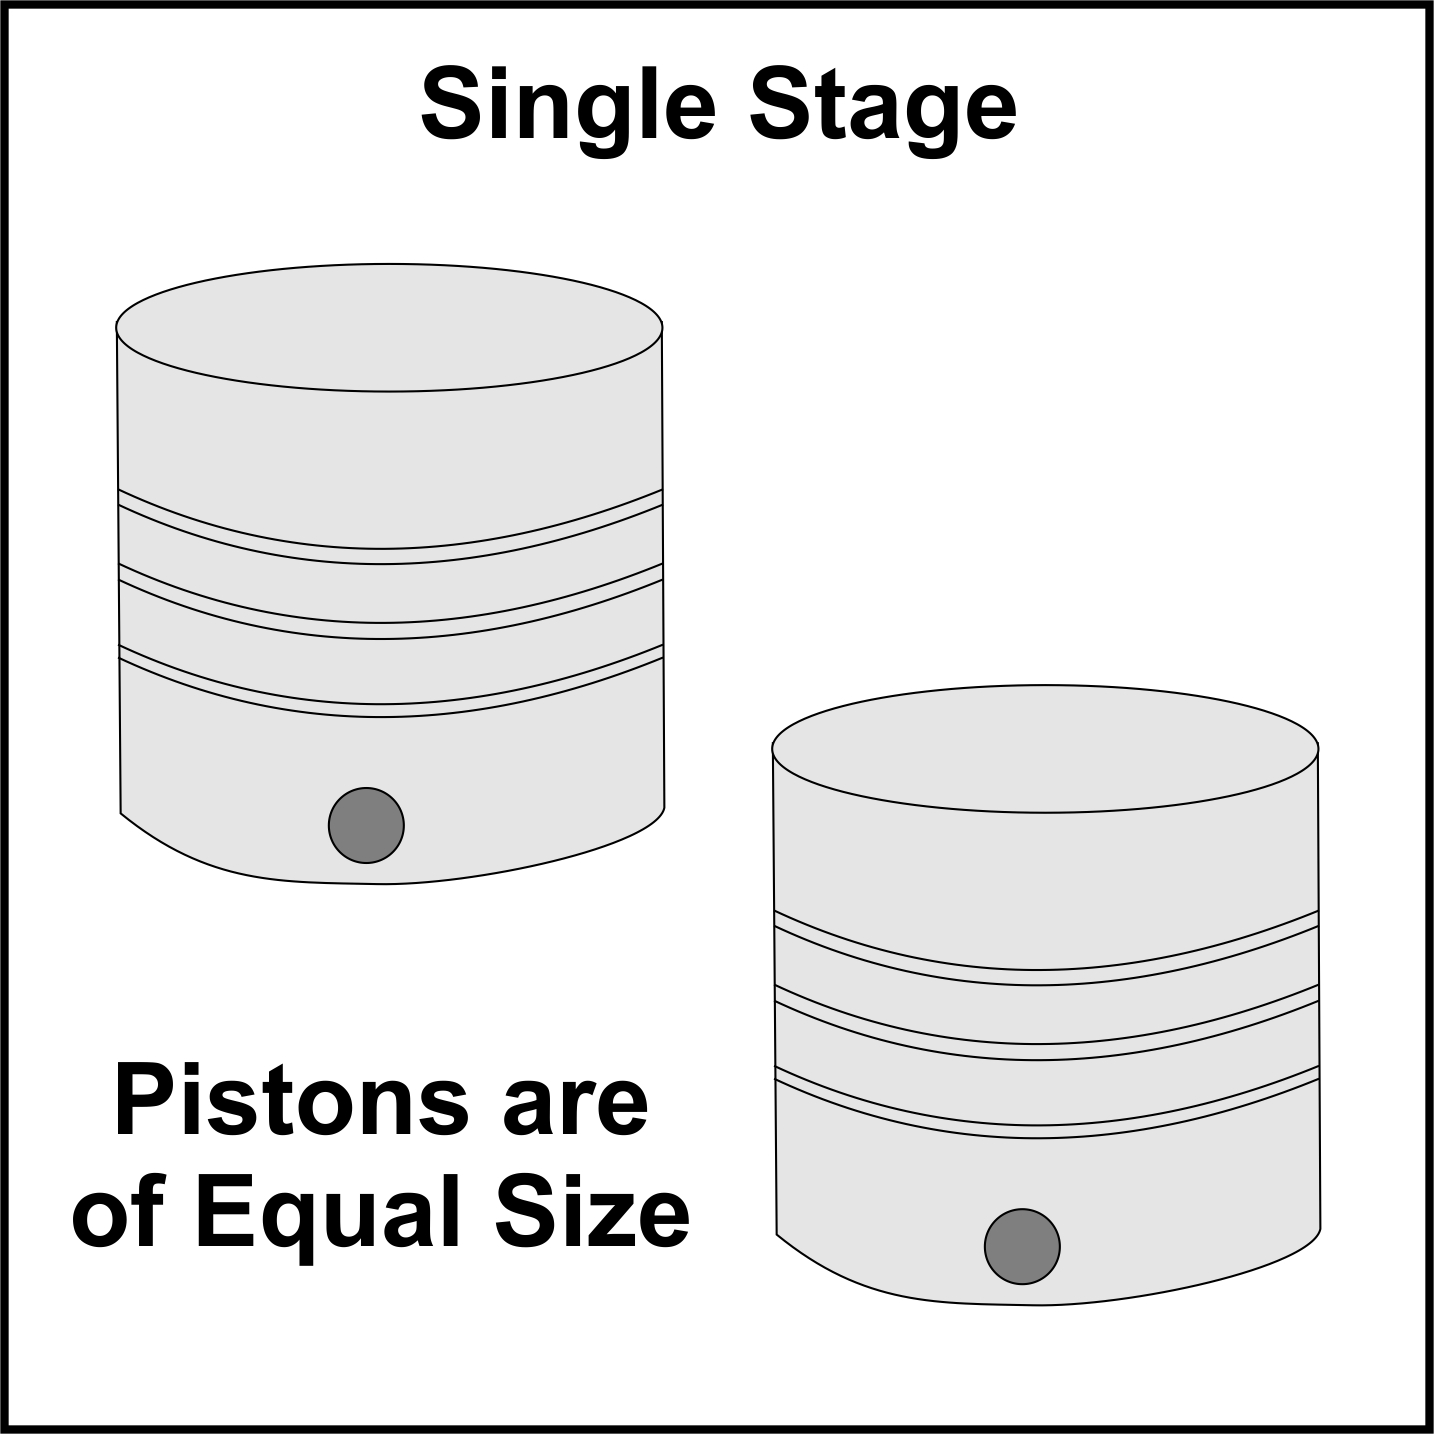 single-stage-pistons.jpg